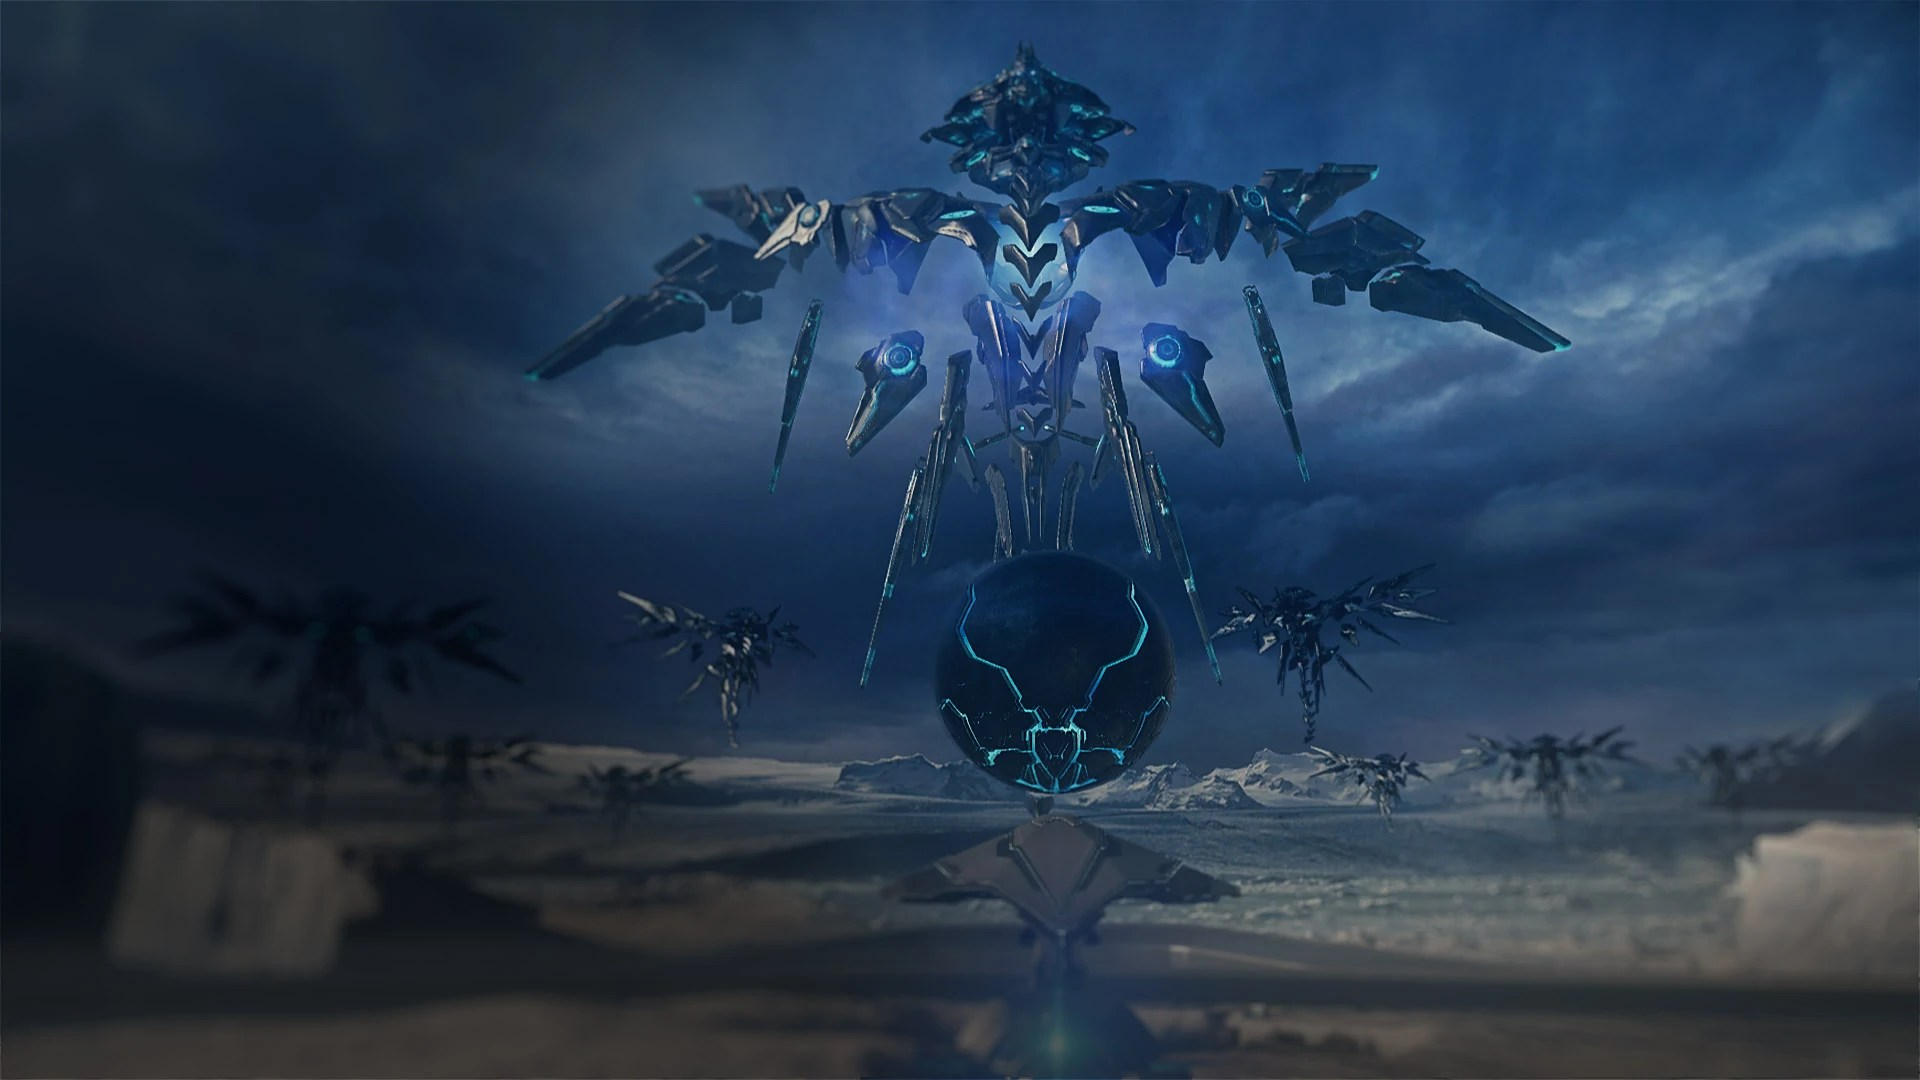 Halo Wallpaper Fall Of Reach Guardians Halo Nation Fandom Powered By Wikia